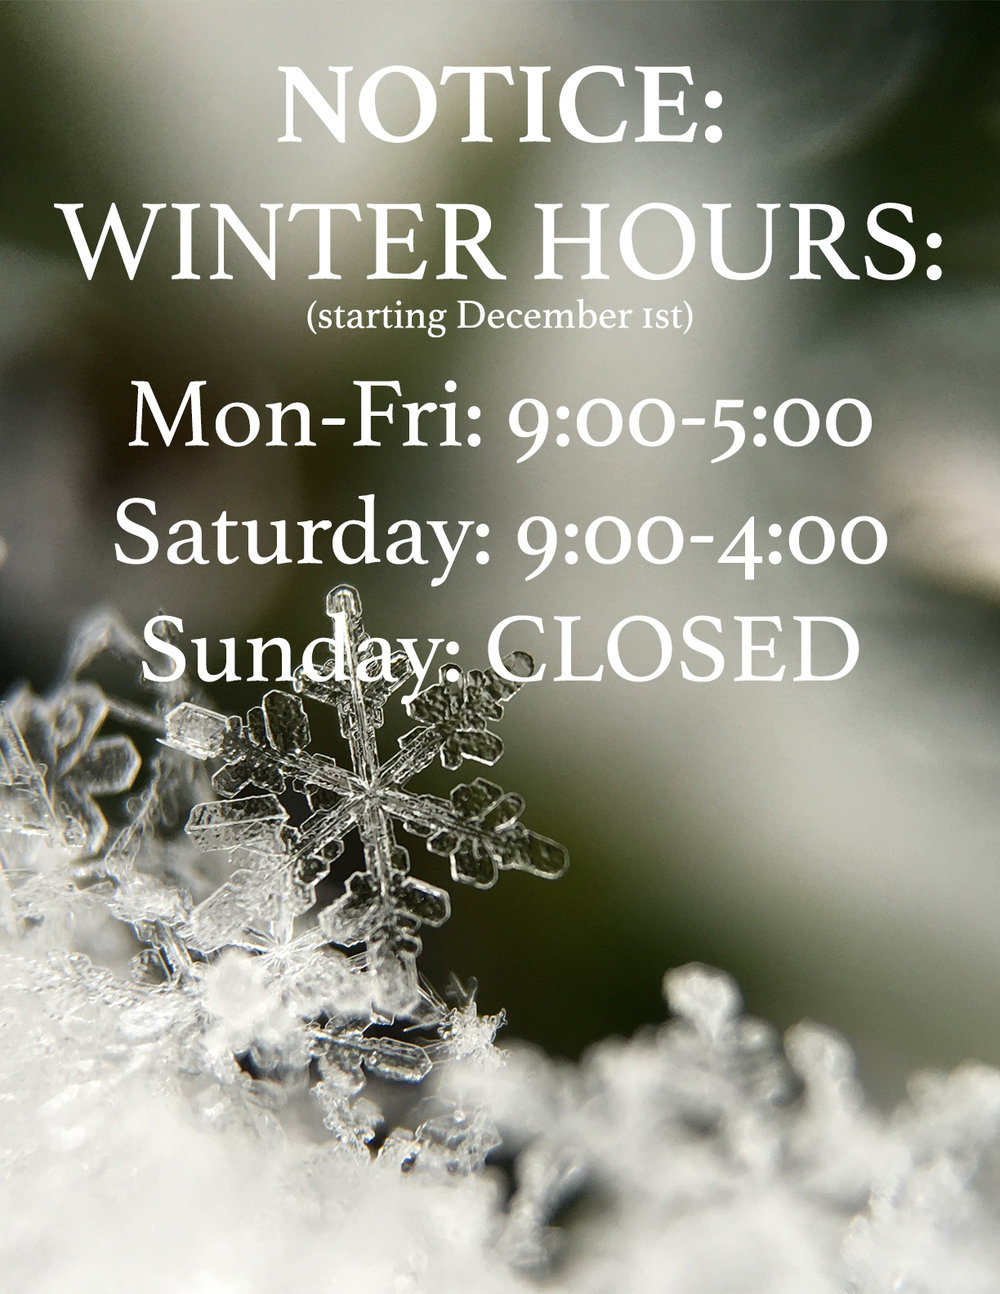 Winter Hours Notice.jpg